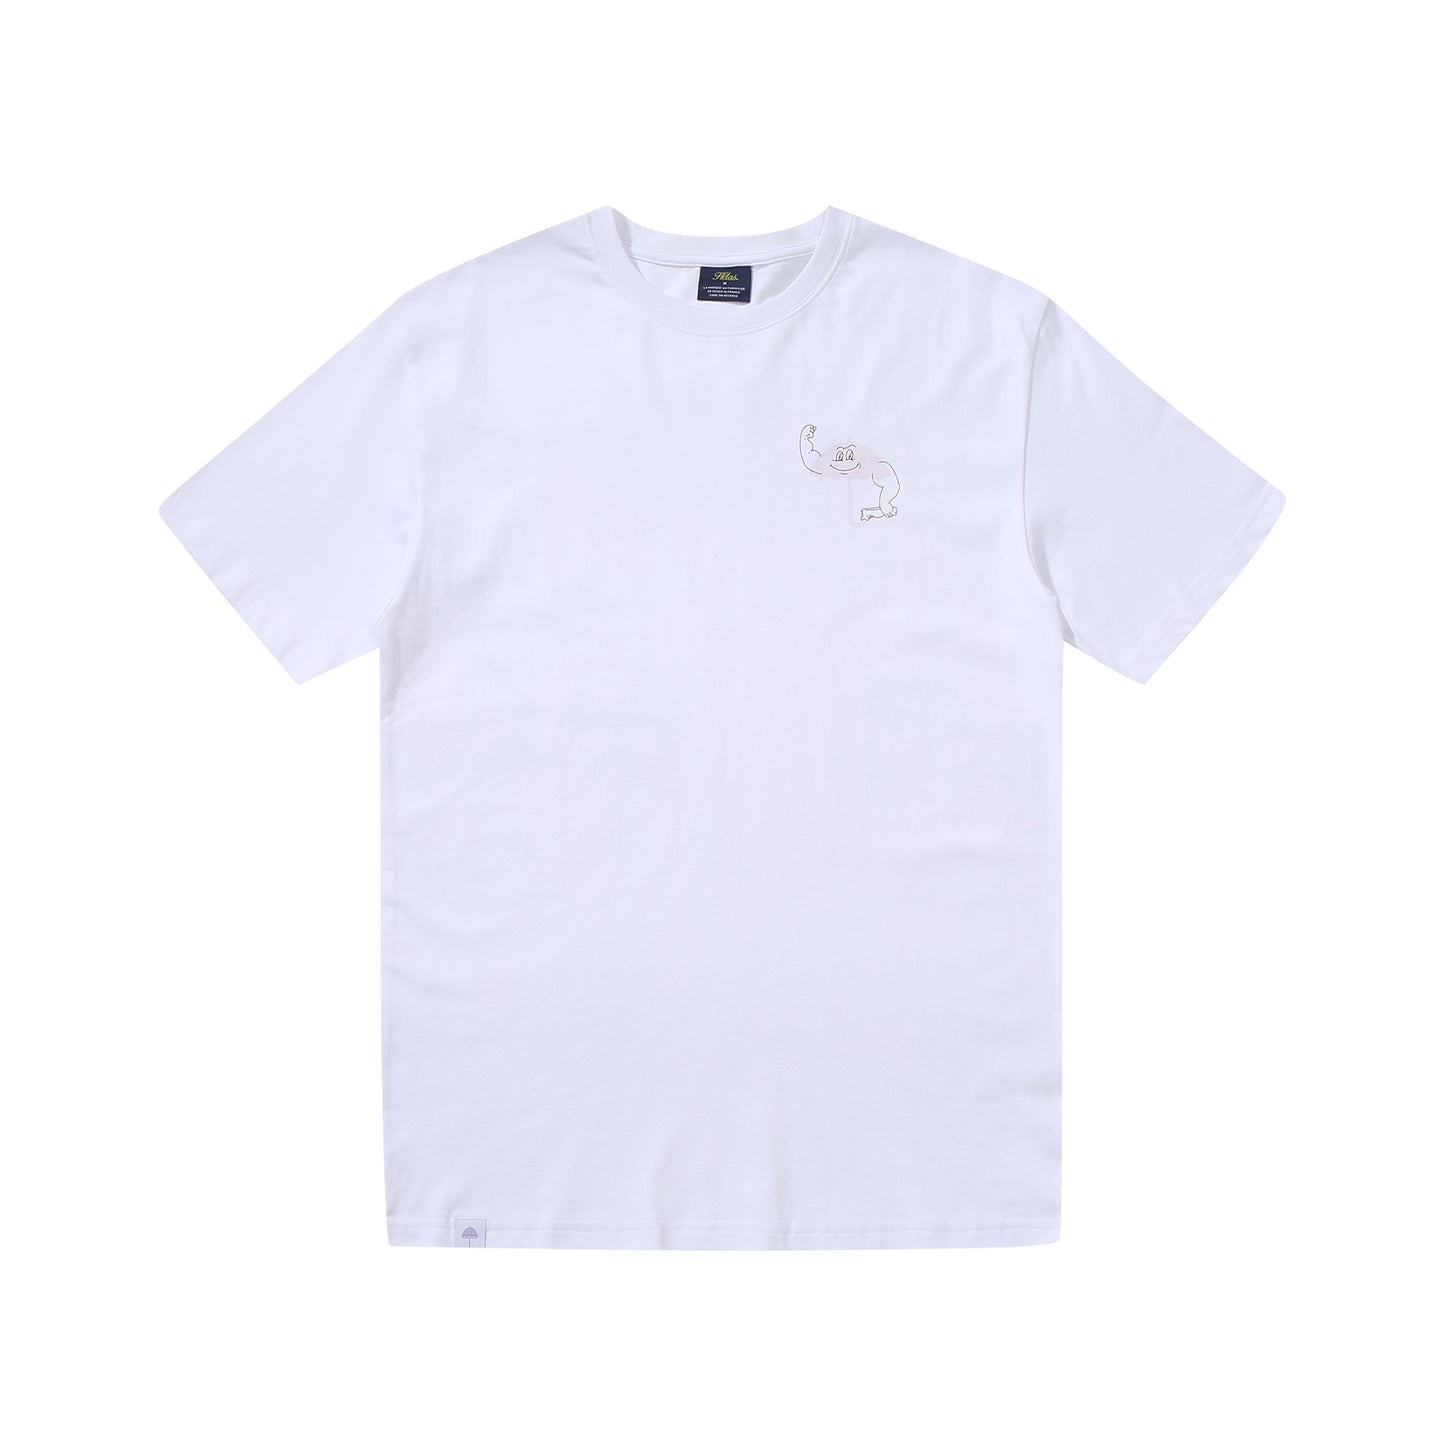 Helas - Strong Tee White